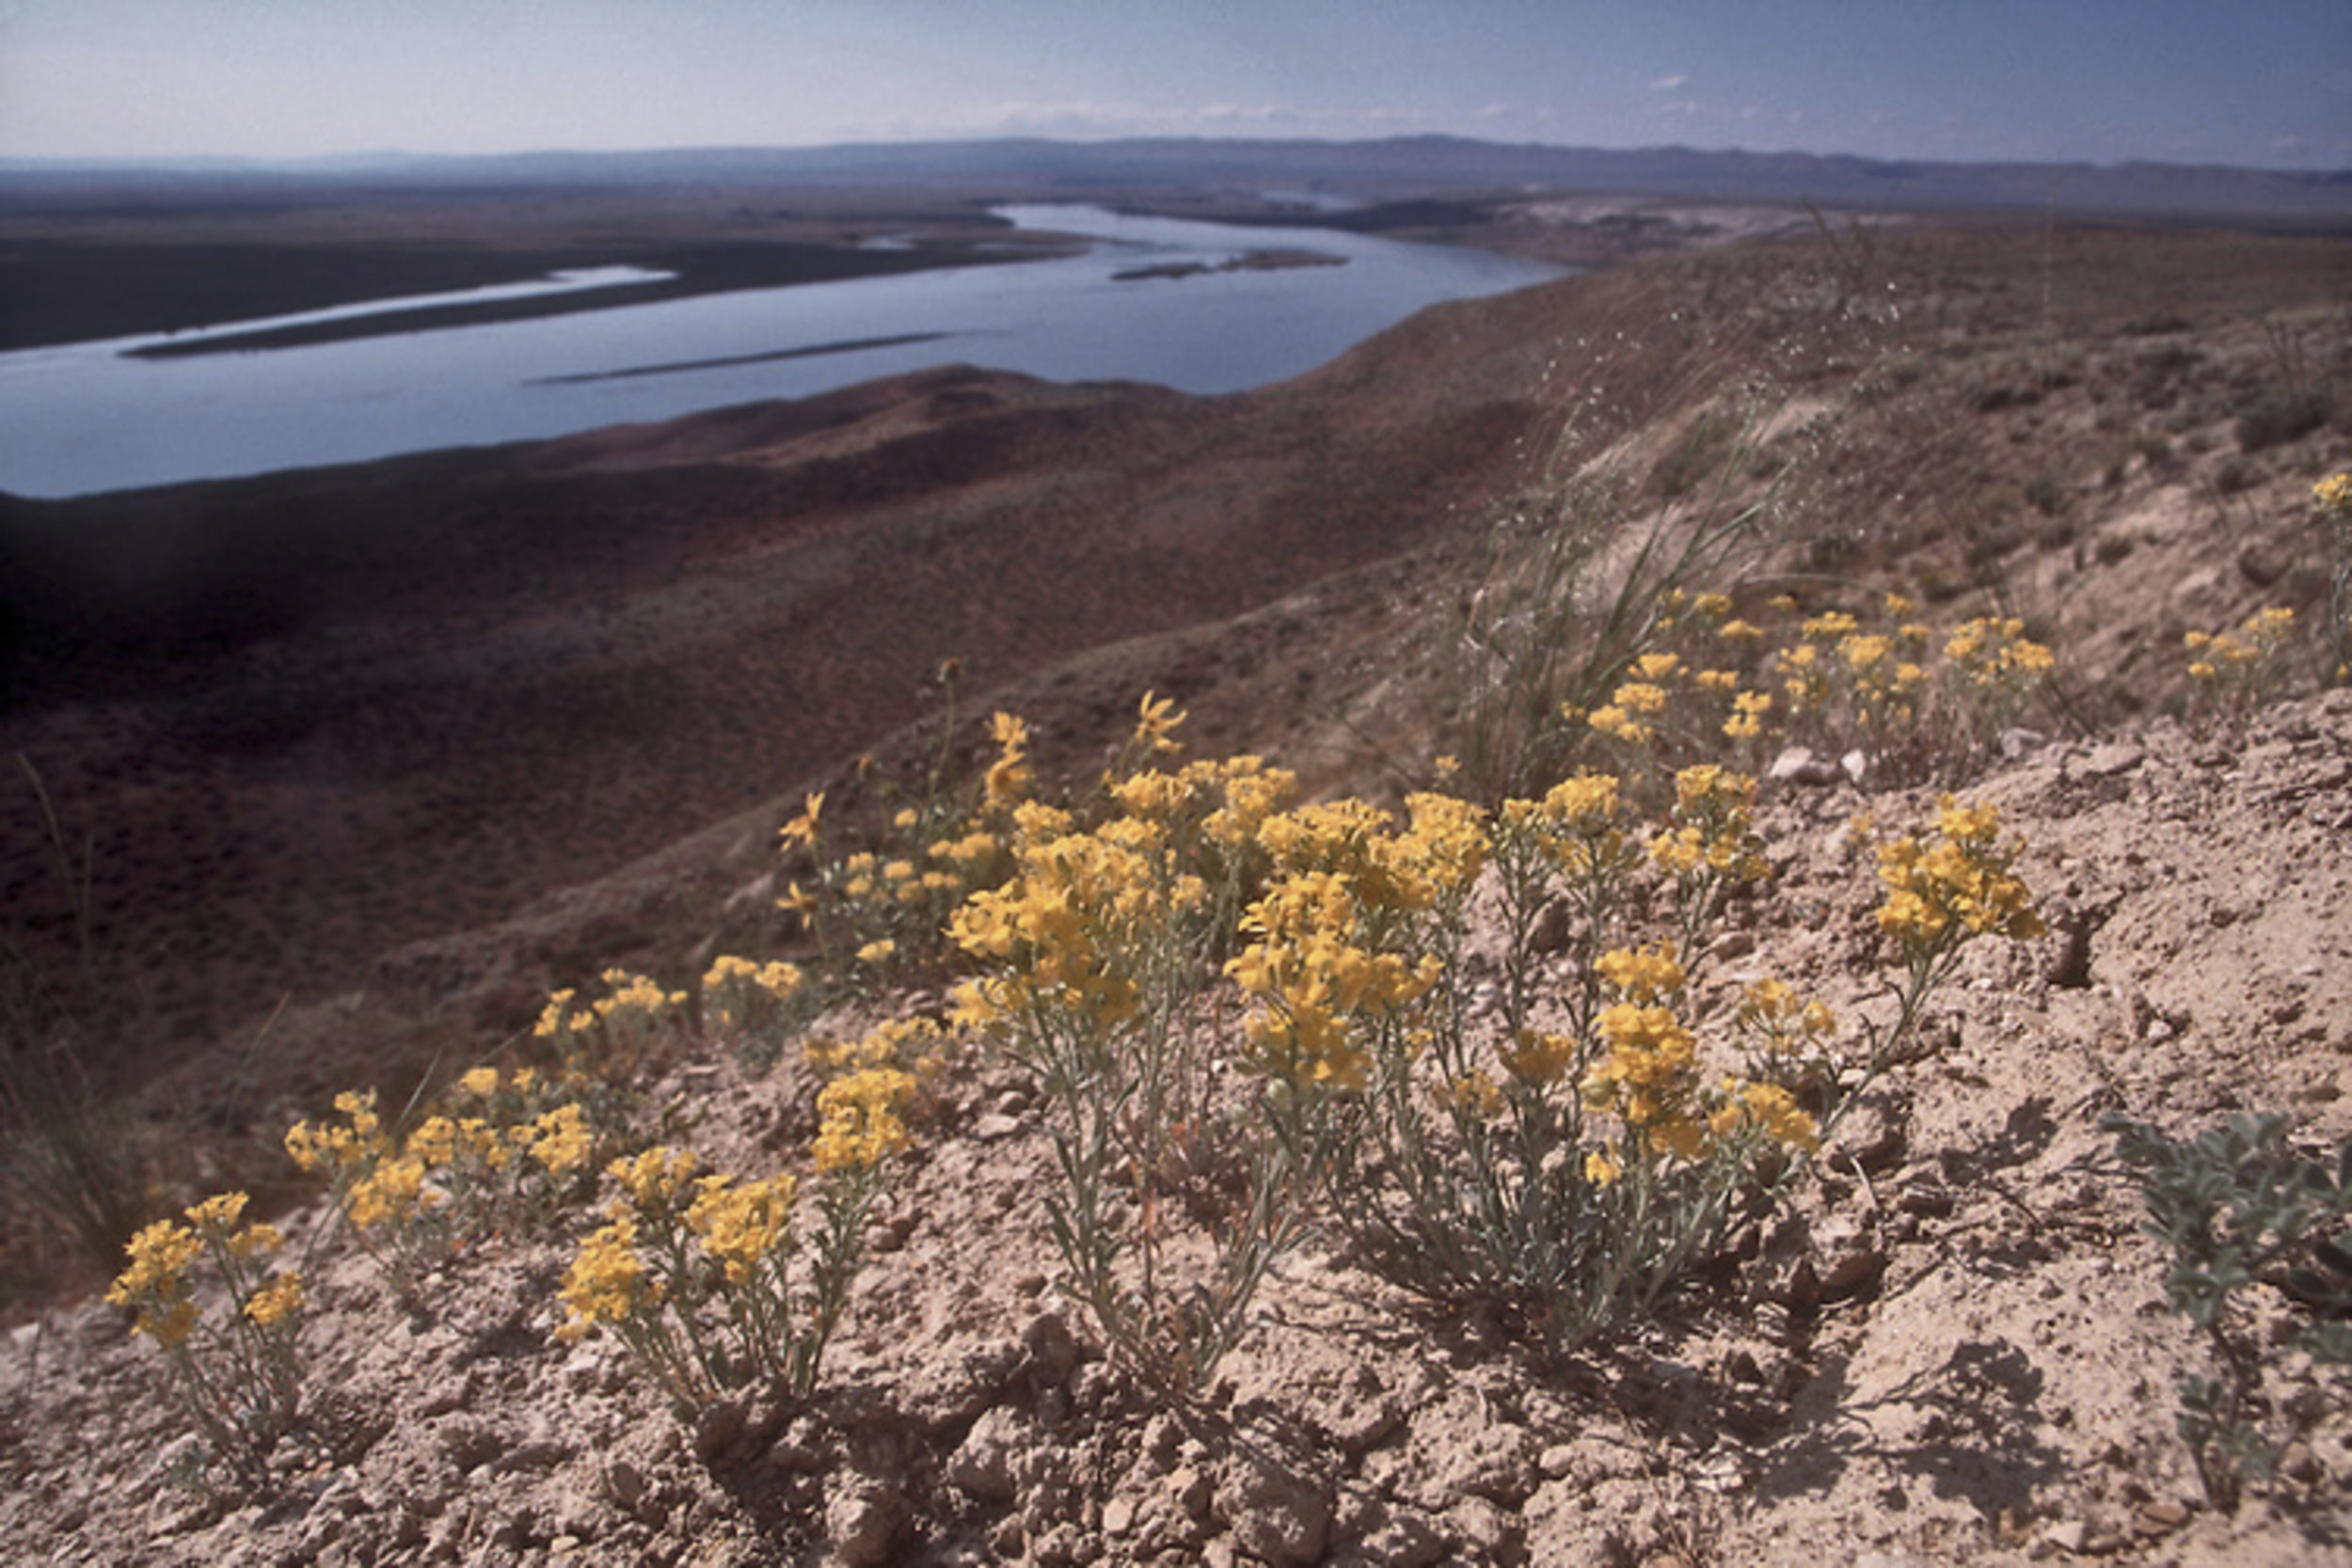 Umtanum Desert Buckwheat ( Erigonum codium) and White Bluffs Bladderpod ( Lesquerella tuplashensis), shown in this photo, were found during The Nature Conservancy's ecological inventory of the Hanford site in the 1990s. Both had been previously unknown to science, and are only known to exist at Hanford Reach. Photo by Joel Rogers 2000.